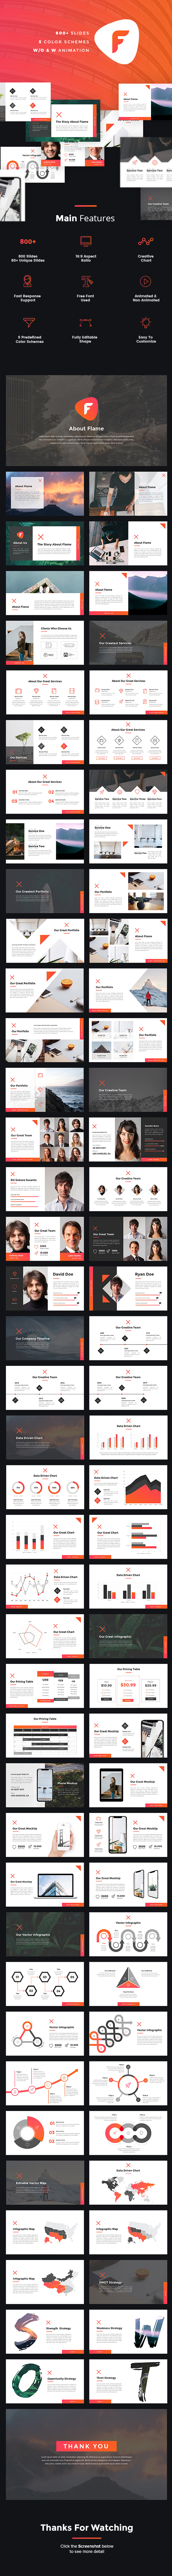 Flame - Creative PowerPoint Template - Creative PowerPoint Templates